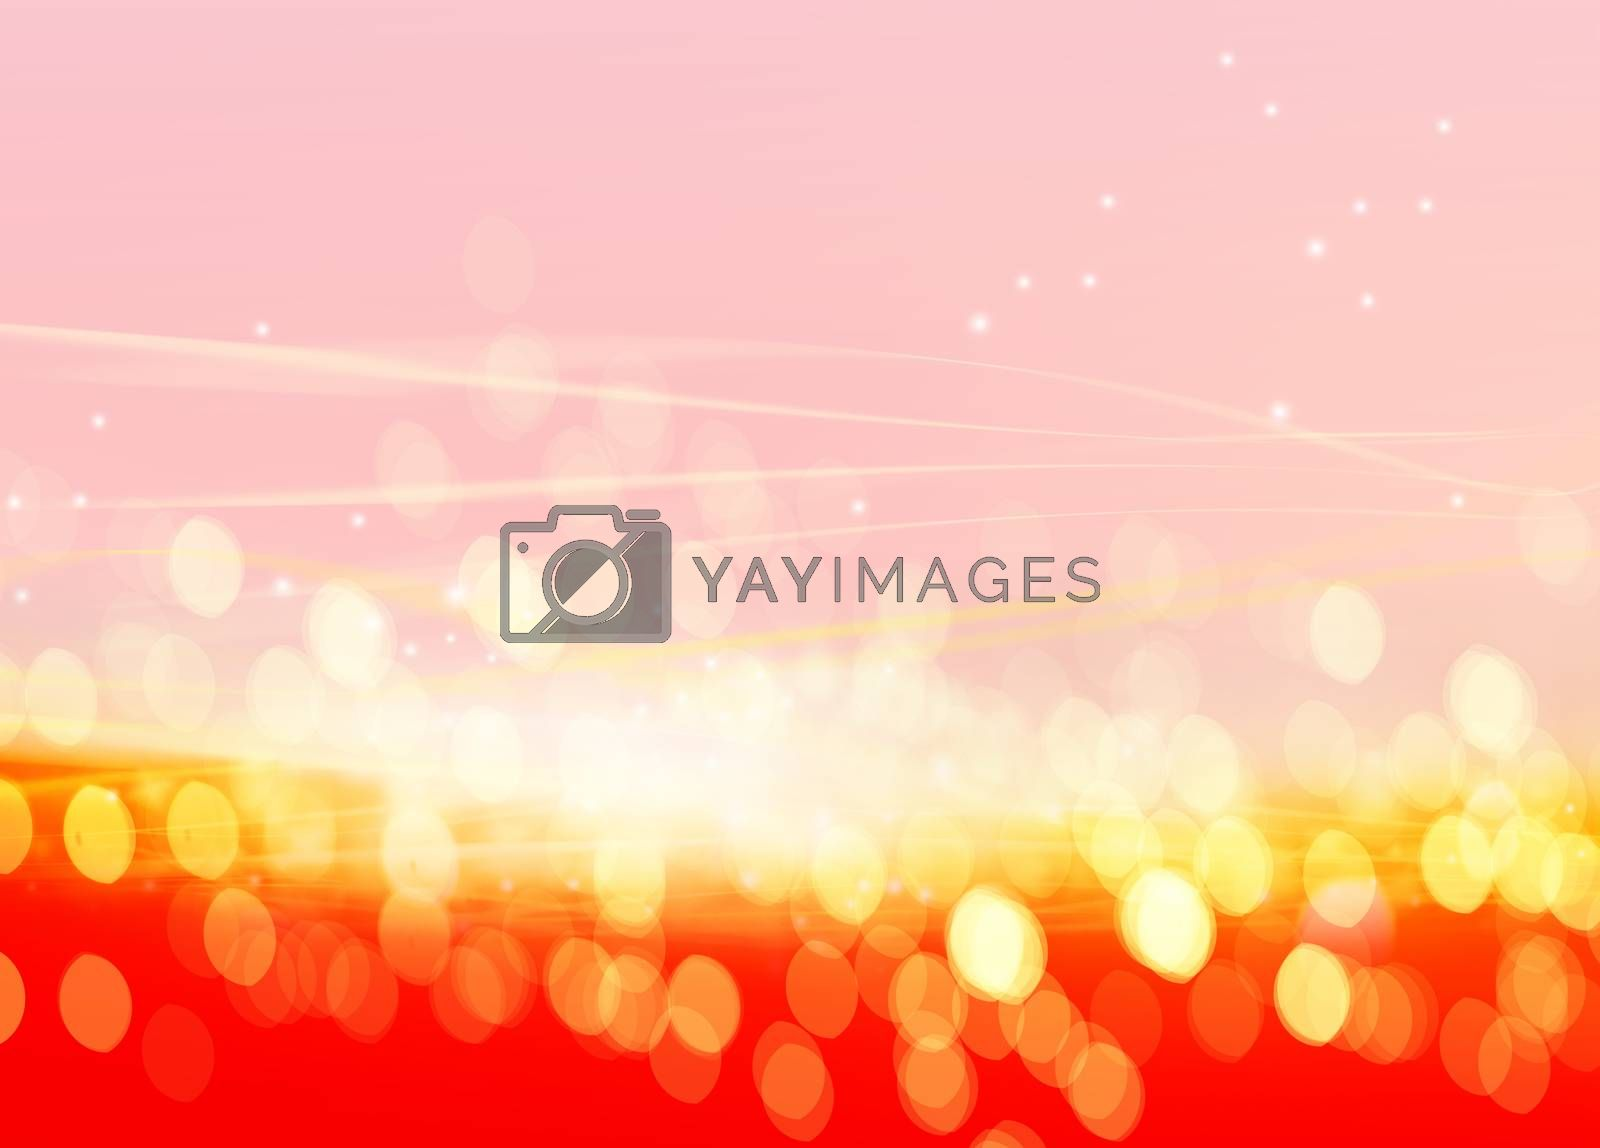 Royalty free image of defocused Christmas lights  by ssuaphoto